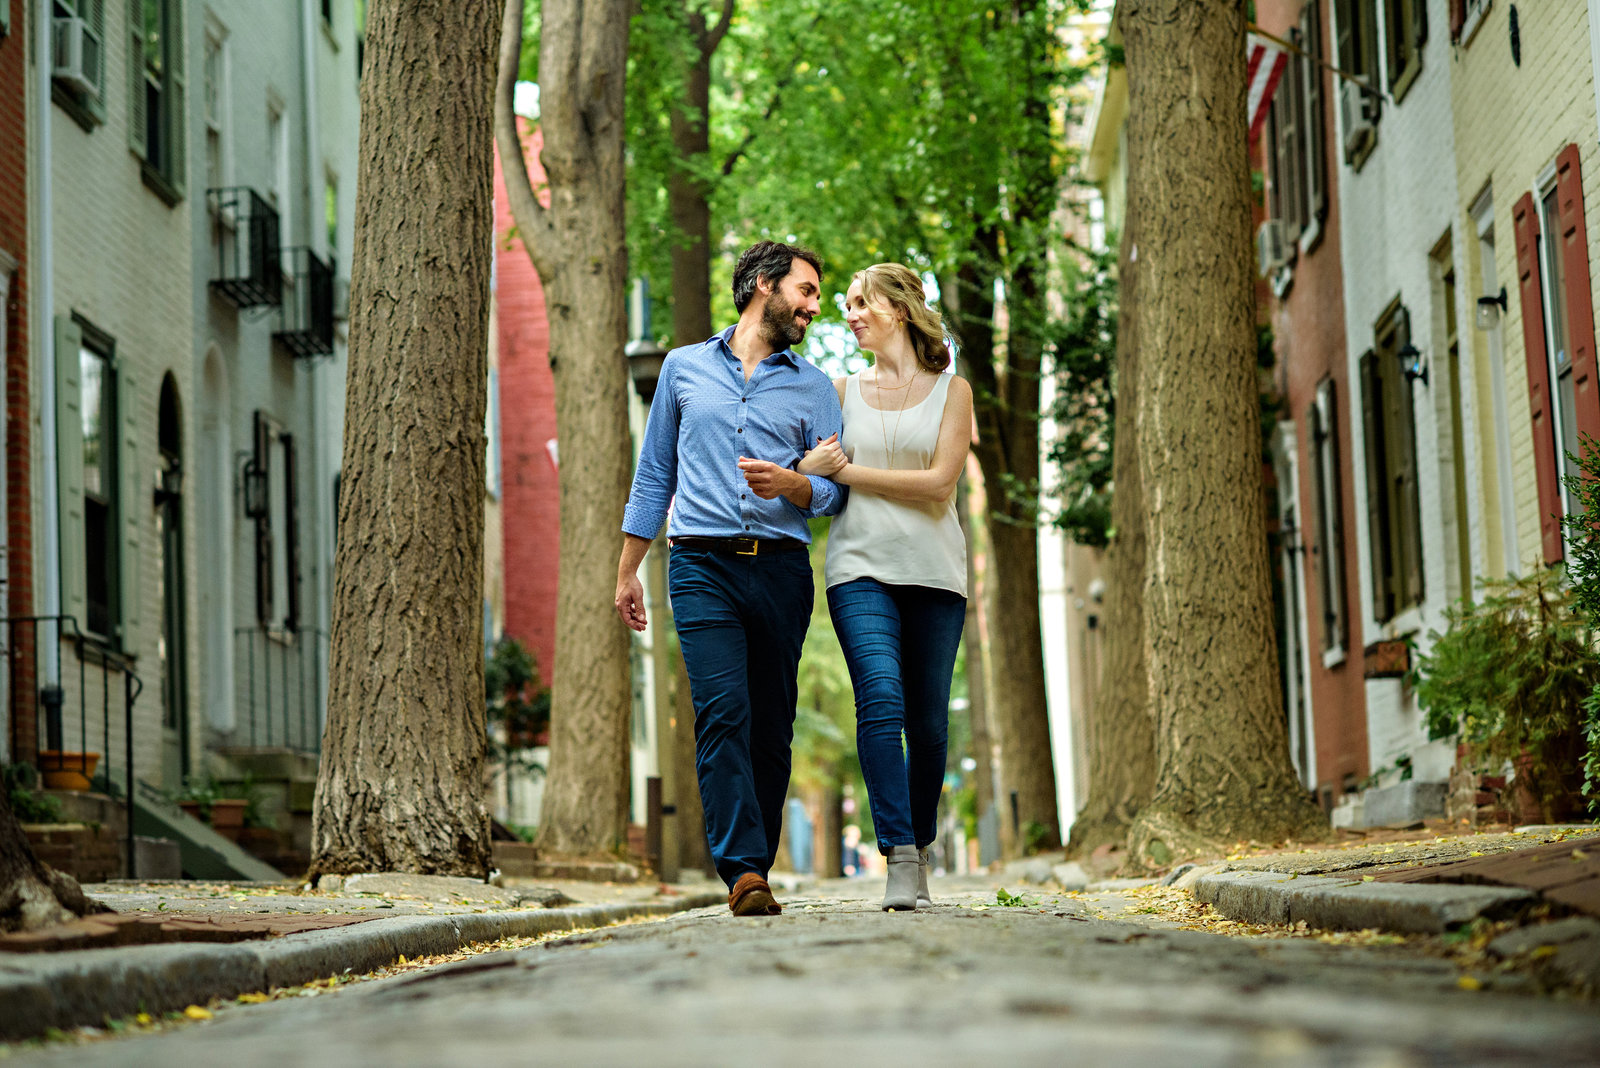 A fun couple walk the cobblestone streets of center city philly.